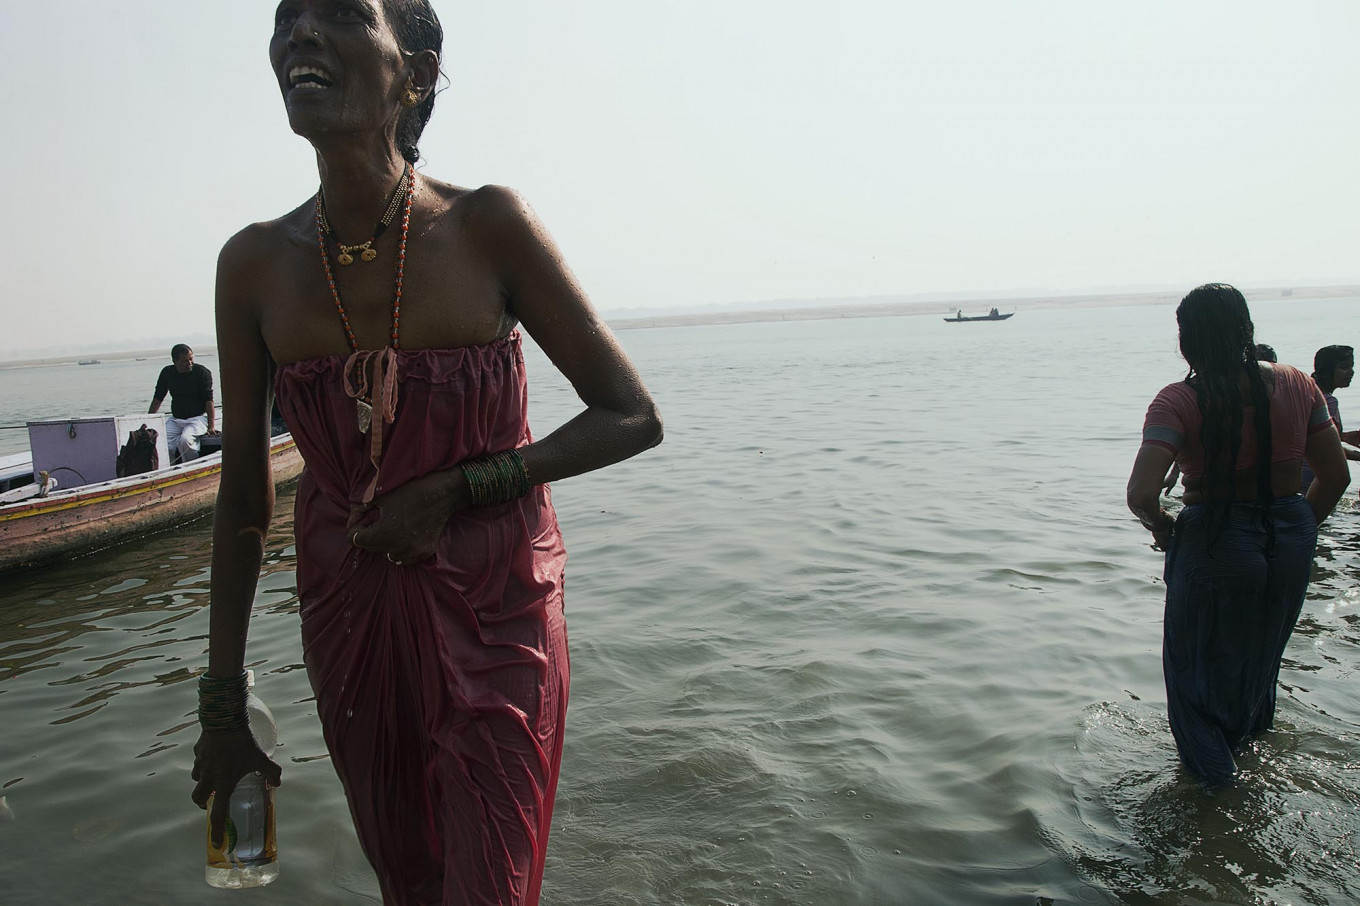 For thousands of years people have come to worship and offer their prayer to the Mother Ganga, an Indian's epithet for the holy river. JP/Irene Barlian